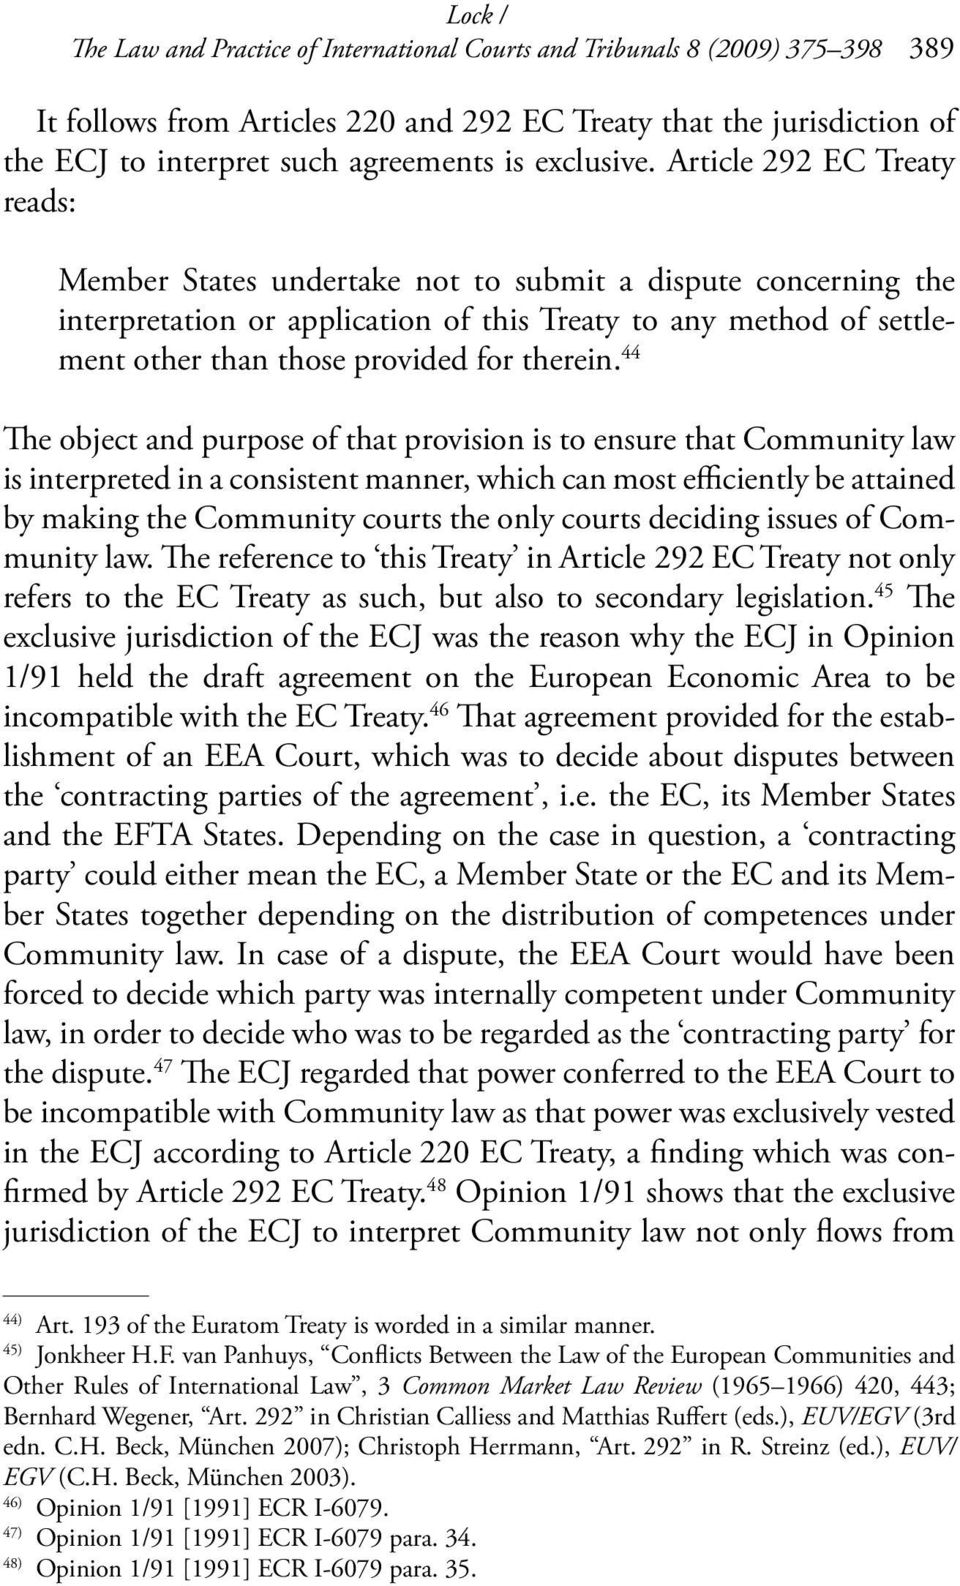 Article 292 EC Treaty reads: Member States undertake not to submit a dispute concerning the interpretation or application of this Treaty to any method of settlement other than those provided for